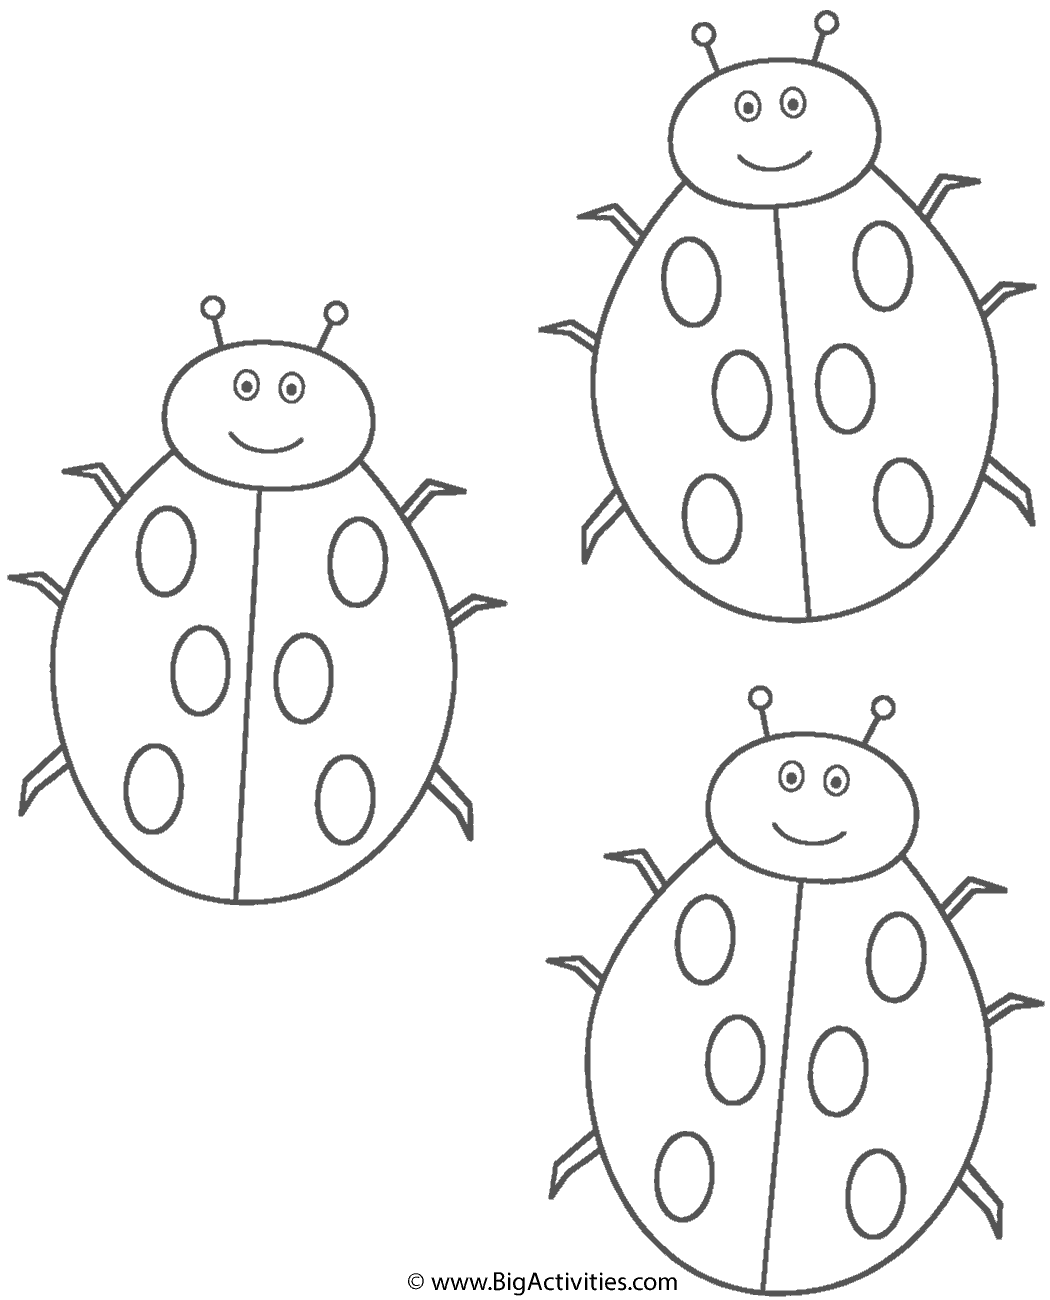 lady bug coloring pages cartoon ladybug coloring page free printable coloring pages bug lady pages coloring